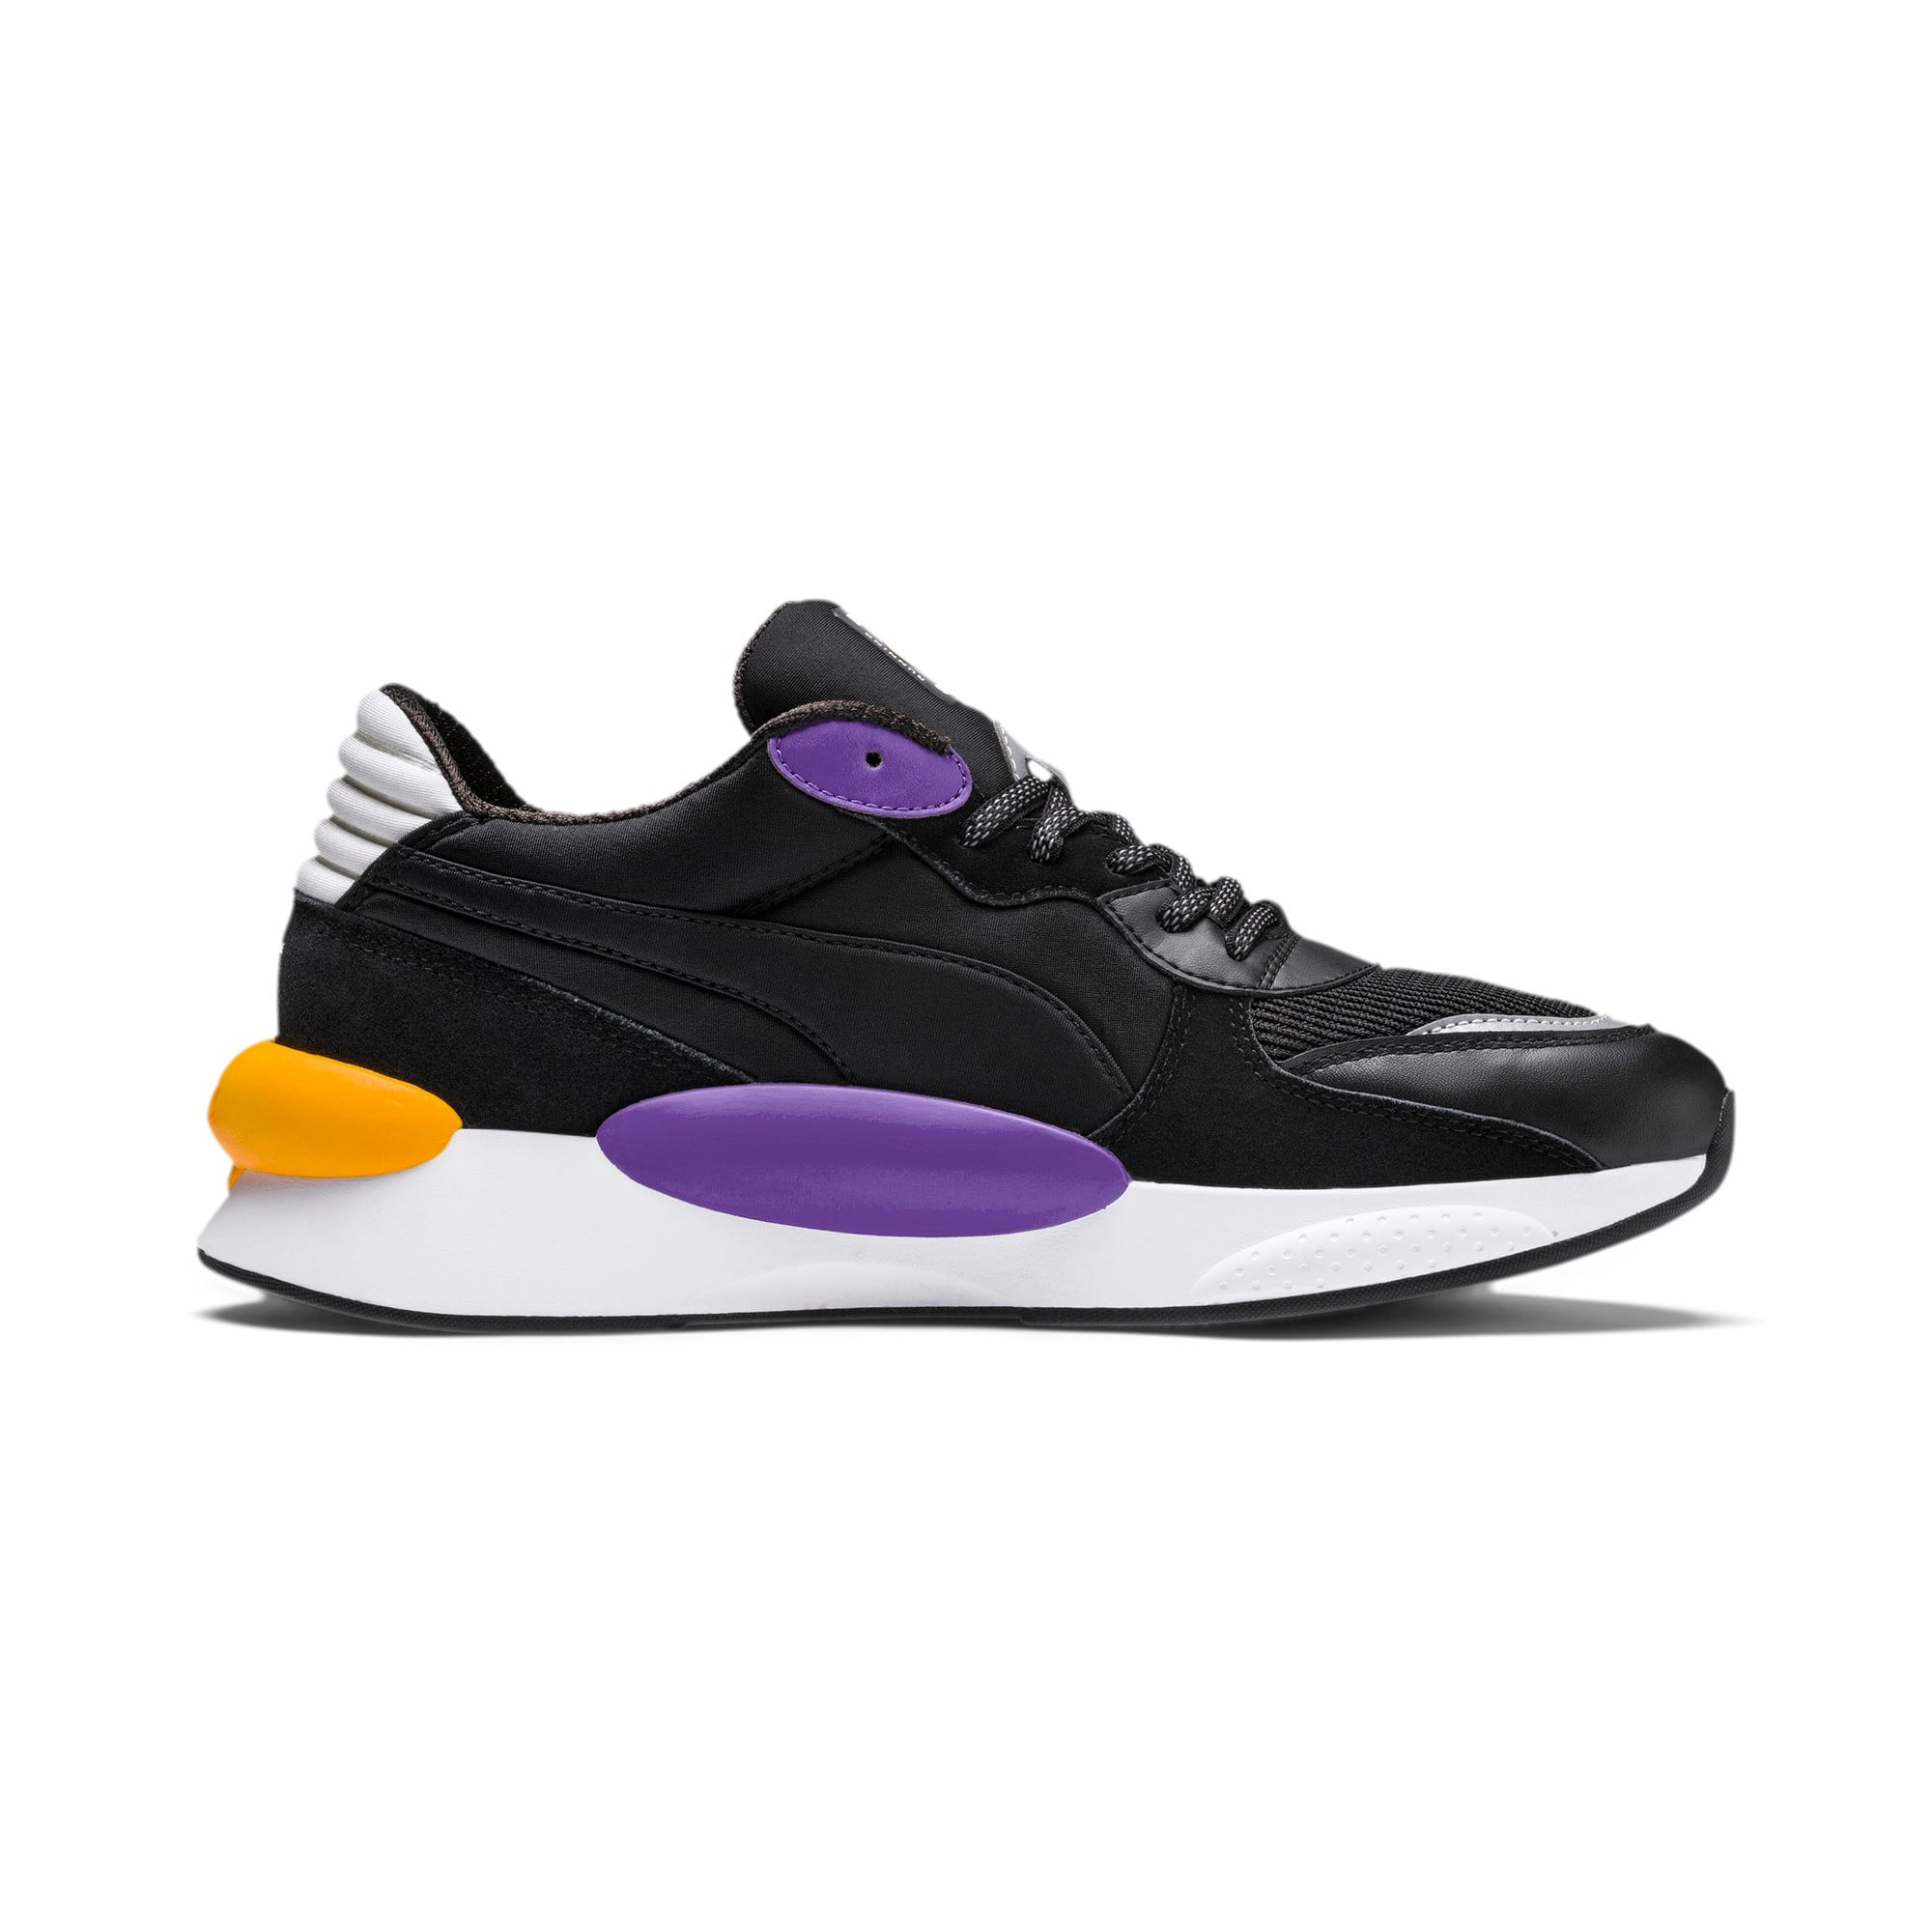 Thumbnail 6 of RS 9.8 Gravity Trainers, Puma Black-Purple Glimmer, medium